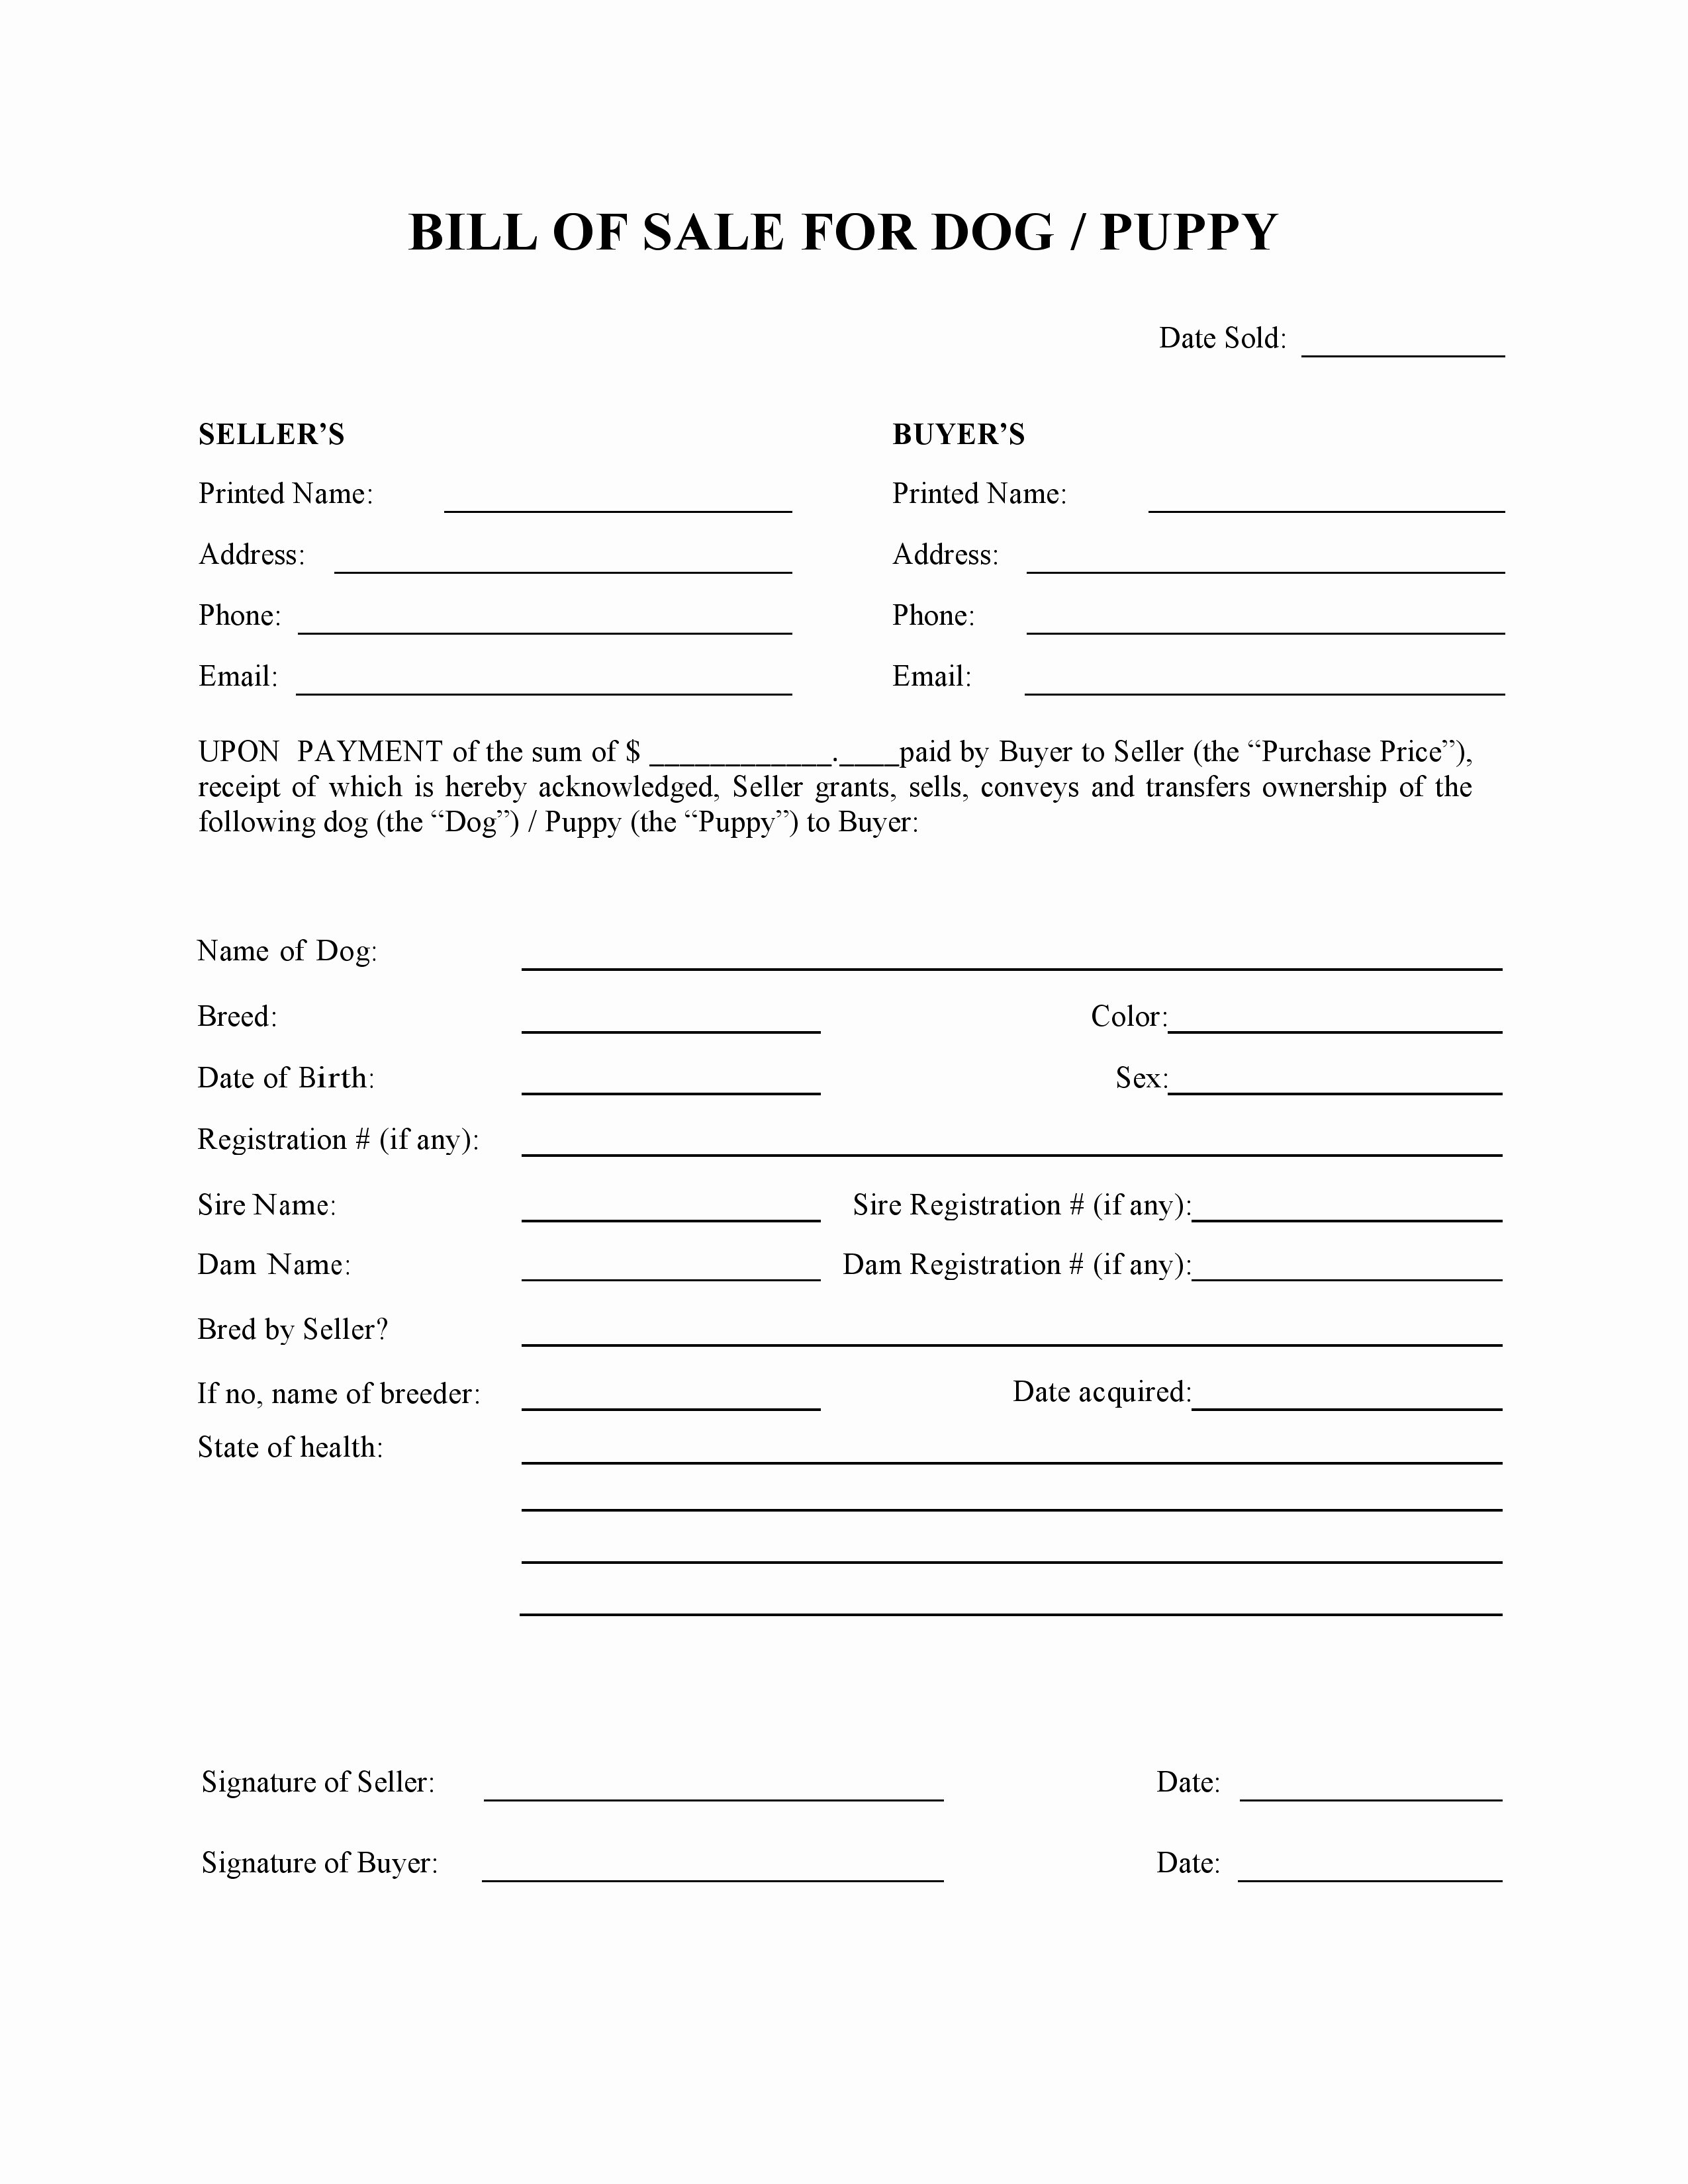 Puppy Bill Of Sale Luxury Free Dog or Puppy Bill Of Sale form Pdf Word